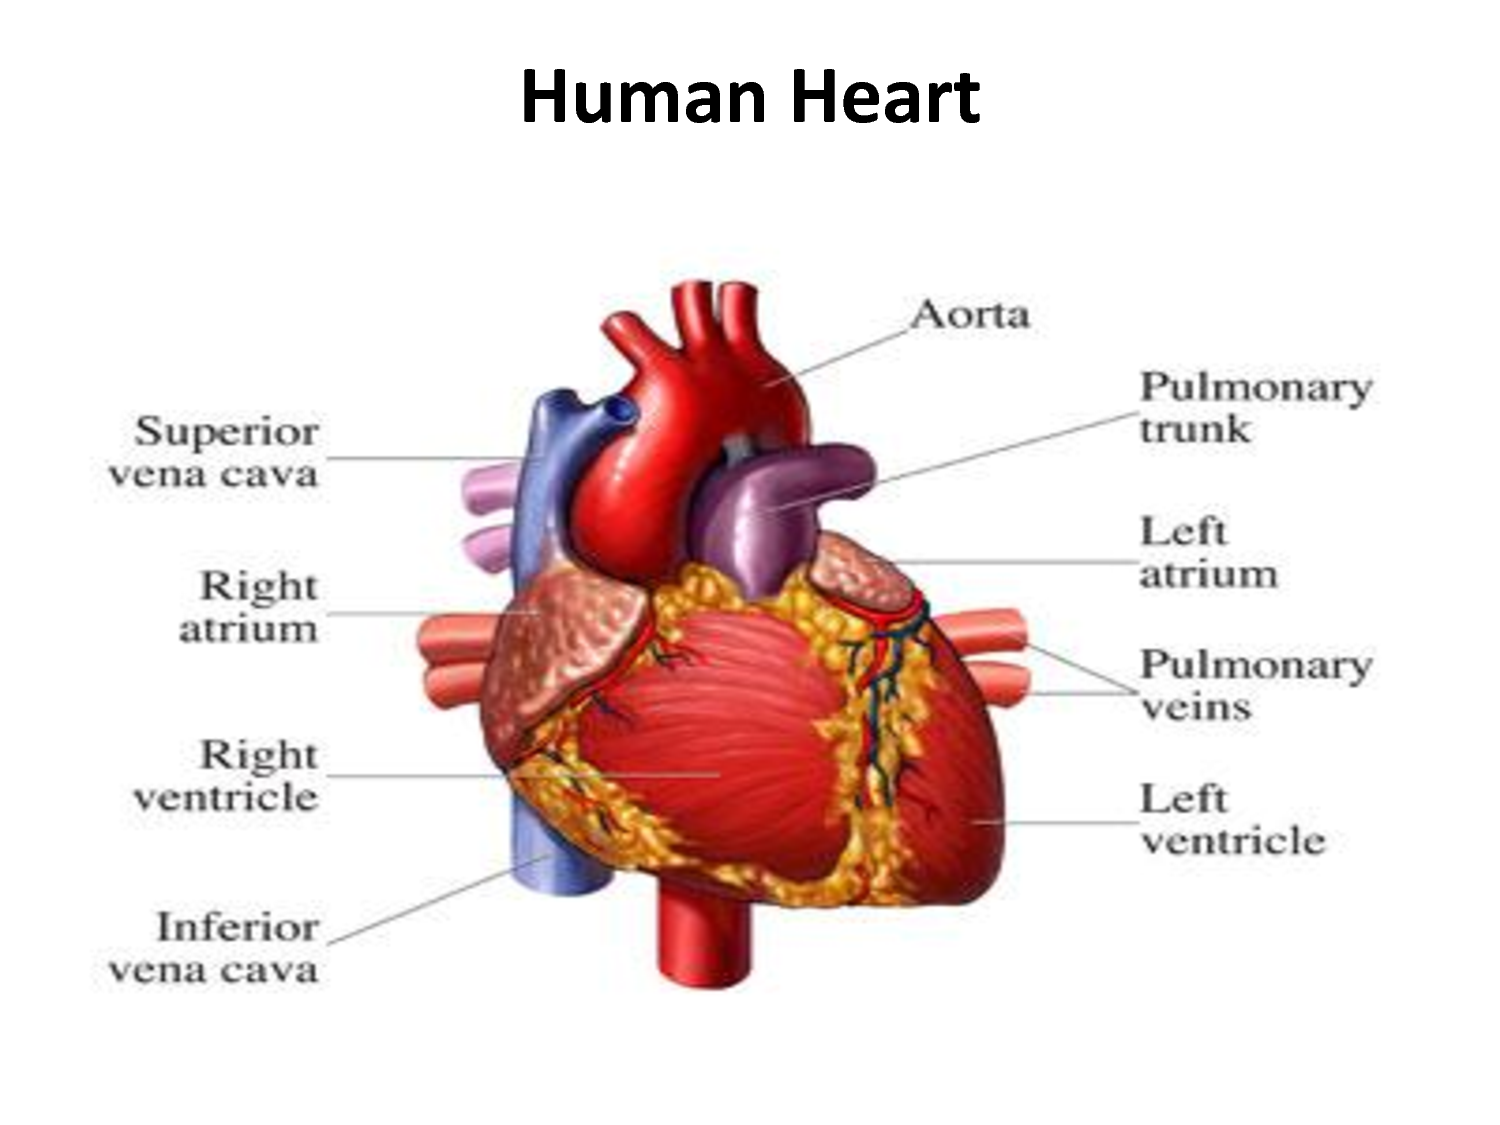 Earthworm Blood Circulation Respiratory Nervous System 1804684 as well Blood Circulatory System In Human Body as well 176745411 in addition Online Healthcare Professional Cpr Aed Course moreover Simple Heart Diagram. on blood circulatory system in hindi